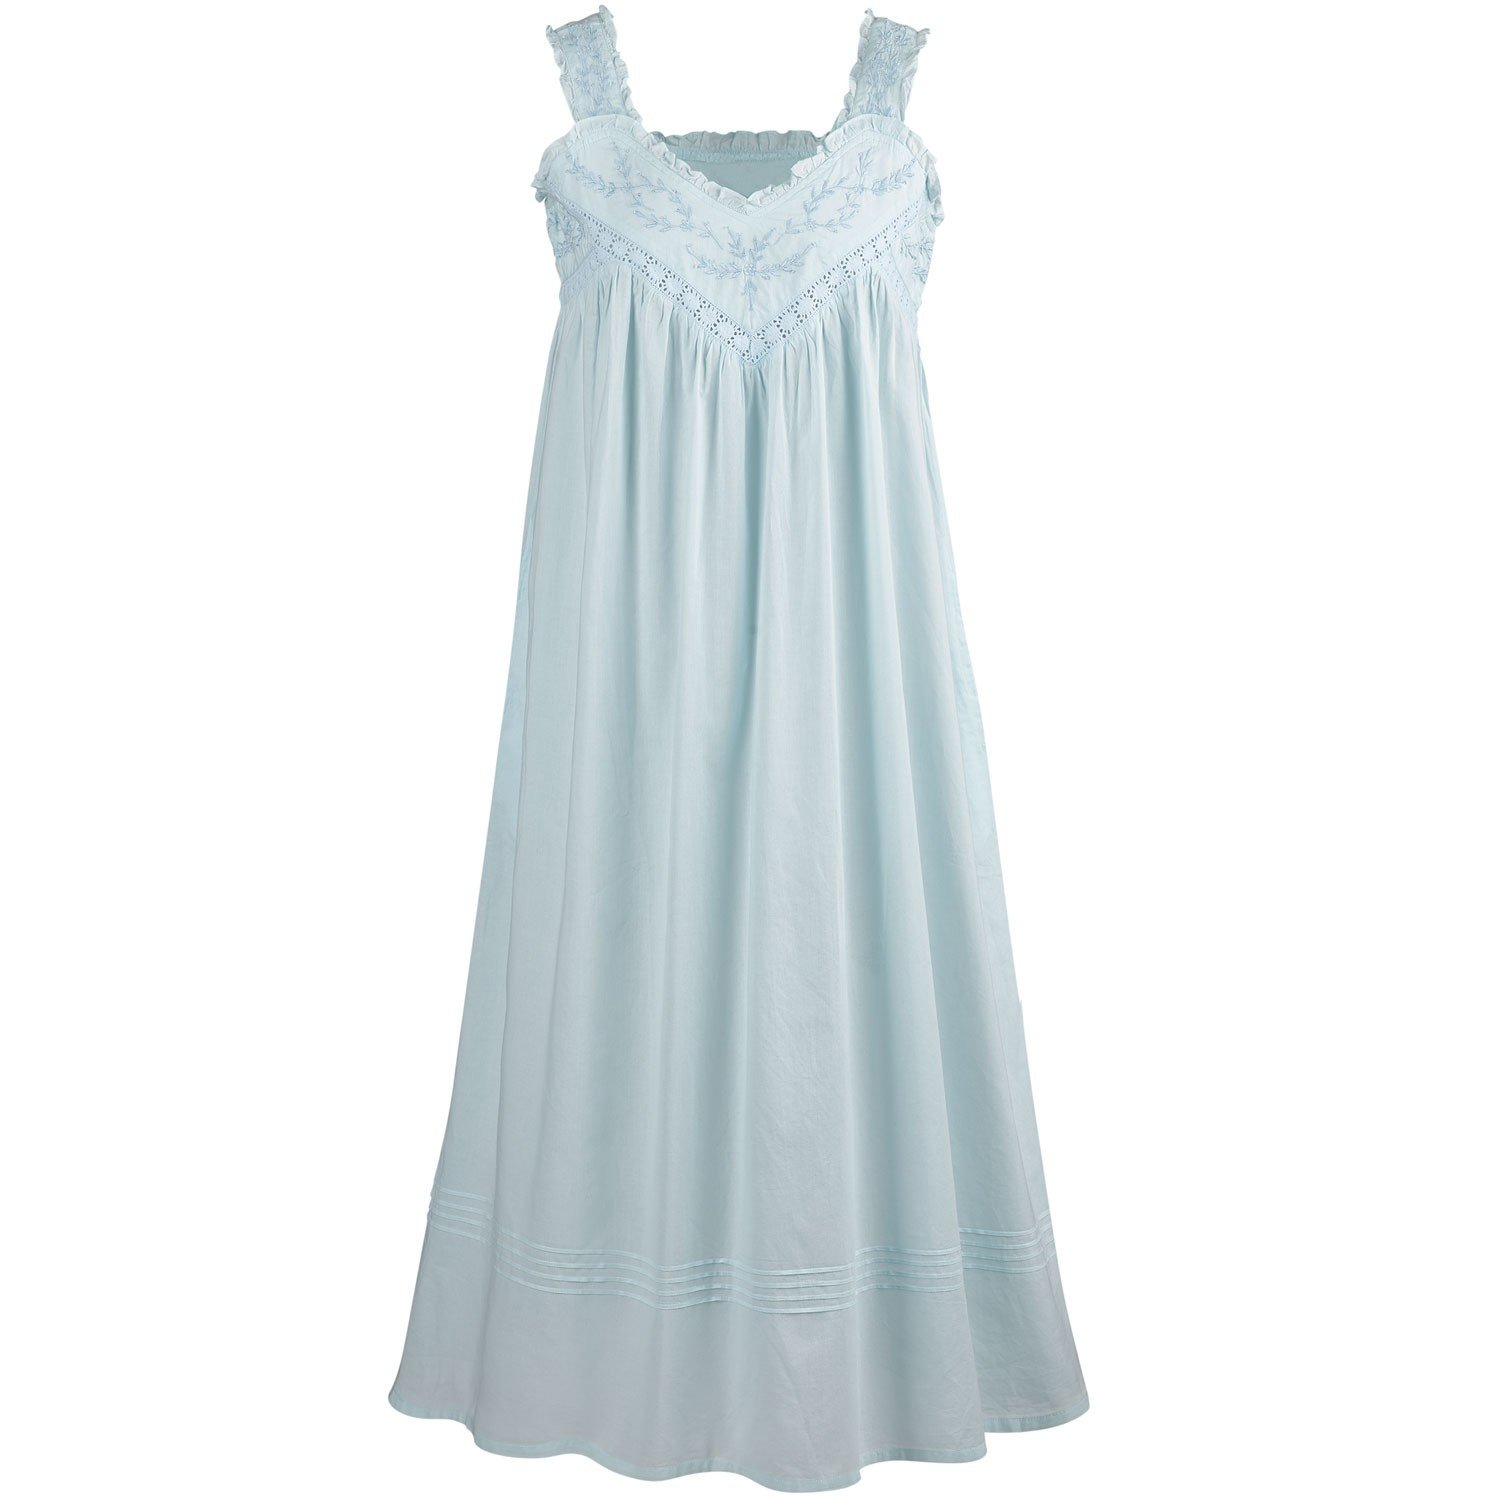 La Cera Cotton Chemise - Lace V-Neck Nightgown with Pockets Nightgown - Blue - 3X